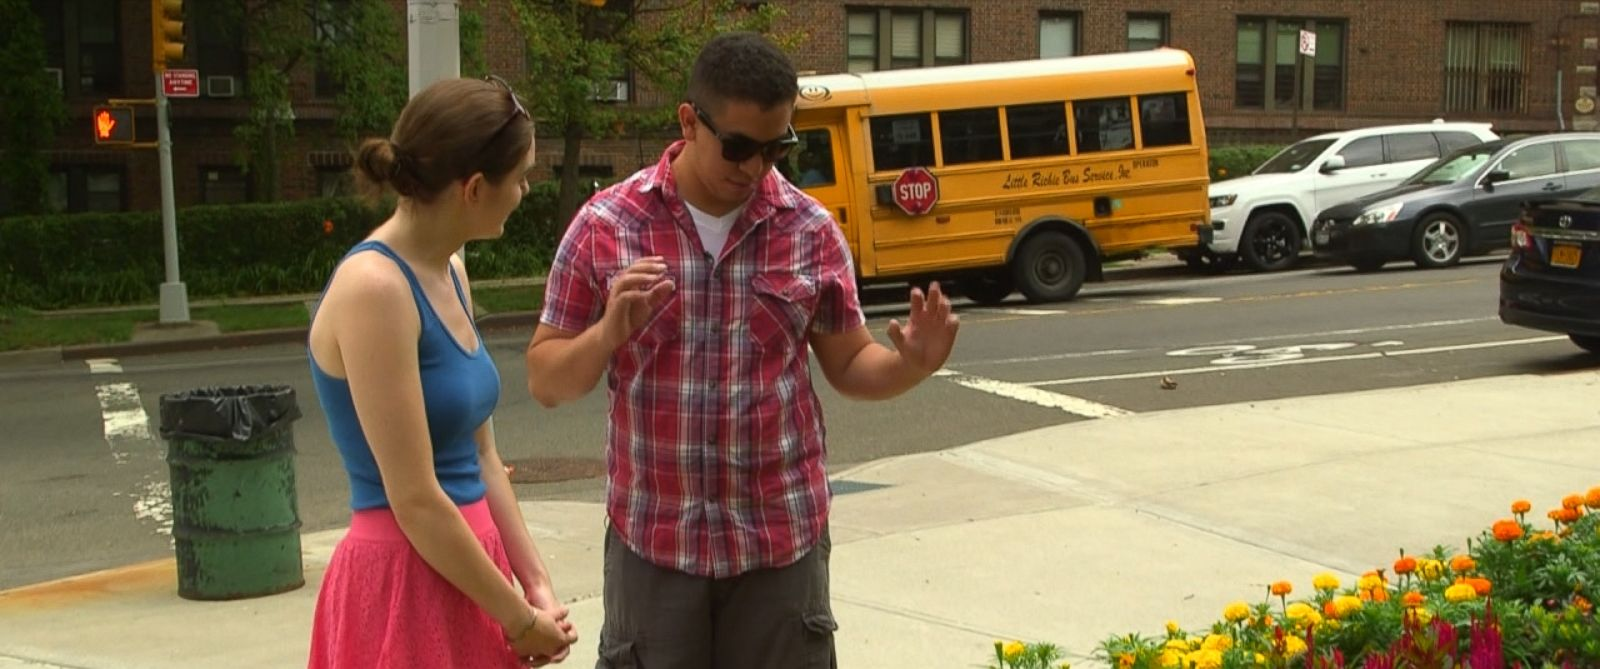 Co color vision tests online - Oscar Puente Tests Out The Enchroma Glasses With His Fiancee For An Abc News Nightline